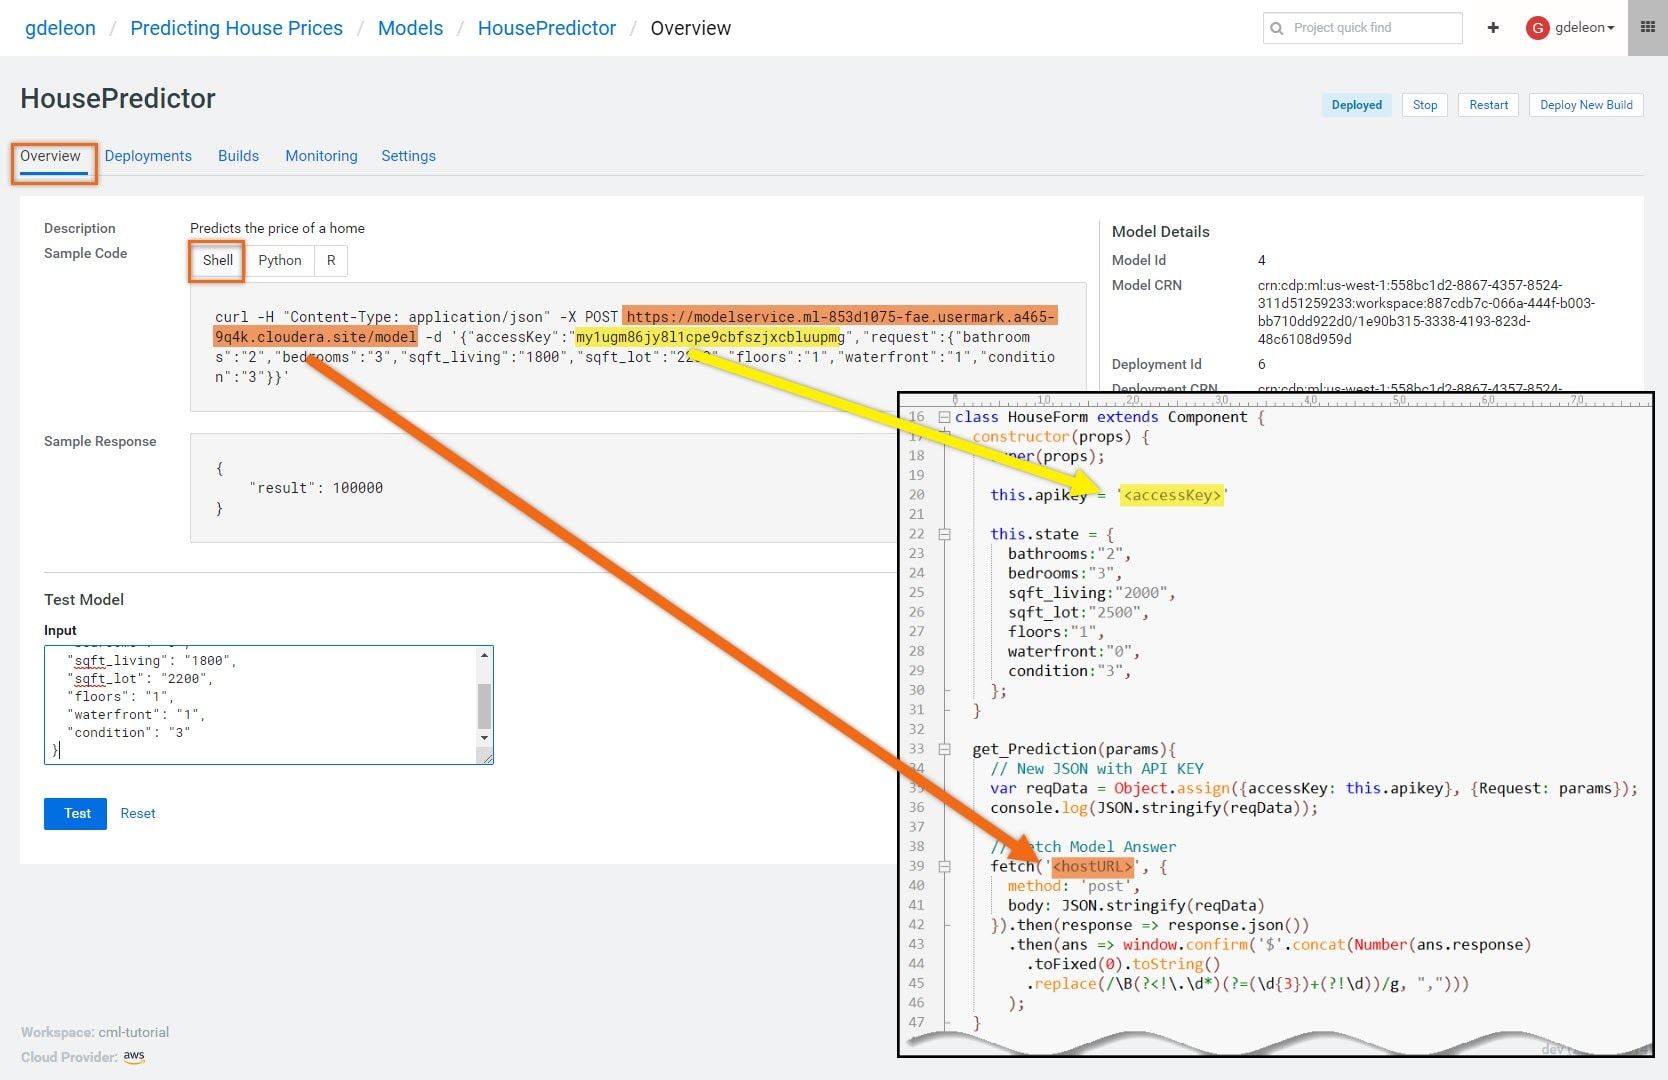 Build, Deploy and Access a Model in Cloudera Machine Learning